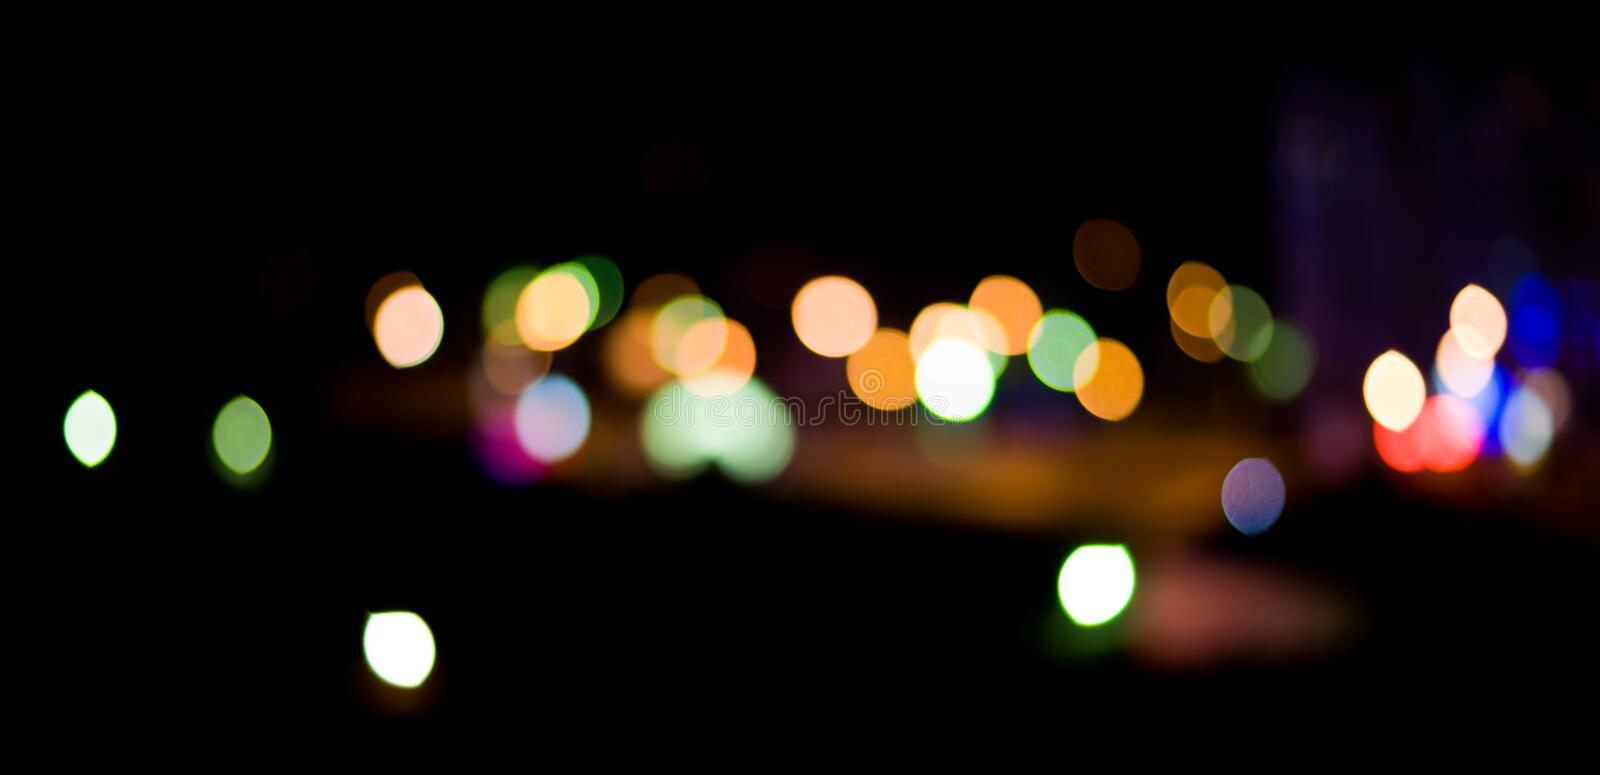 Download City Lights stock photo. Image of pattern, blur, background - 6450734